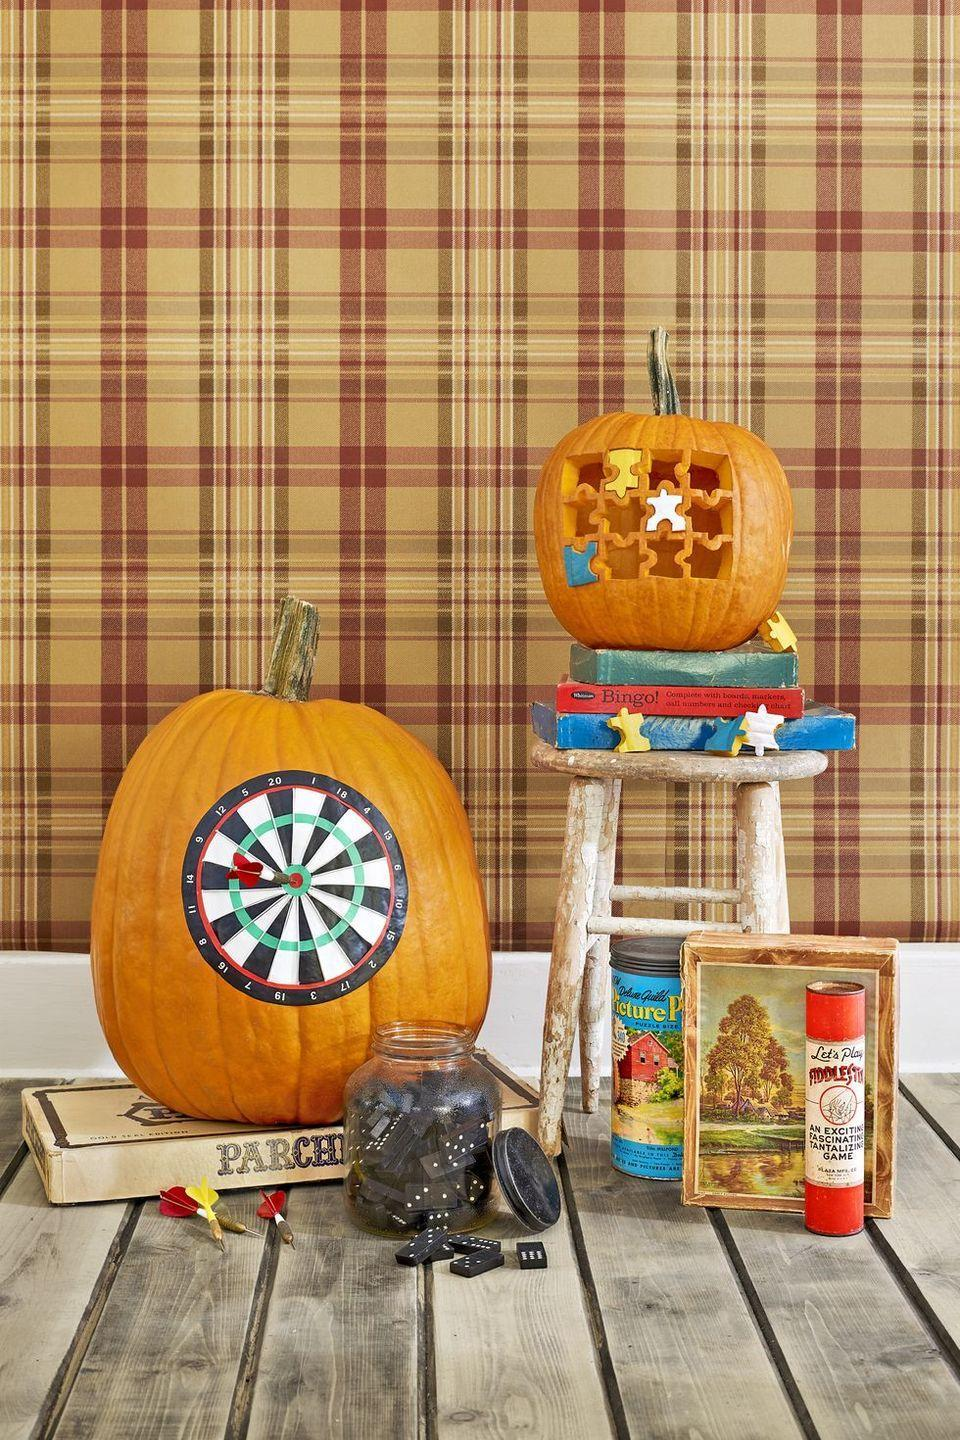 <p>This adorable pumpkin doubles as a kid-friendly activity that'll actually keep them entertained. You can even turn it into a competition by challenging party-goers to complete the puzzle for prizes ... okay, candy. </p>